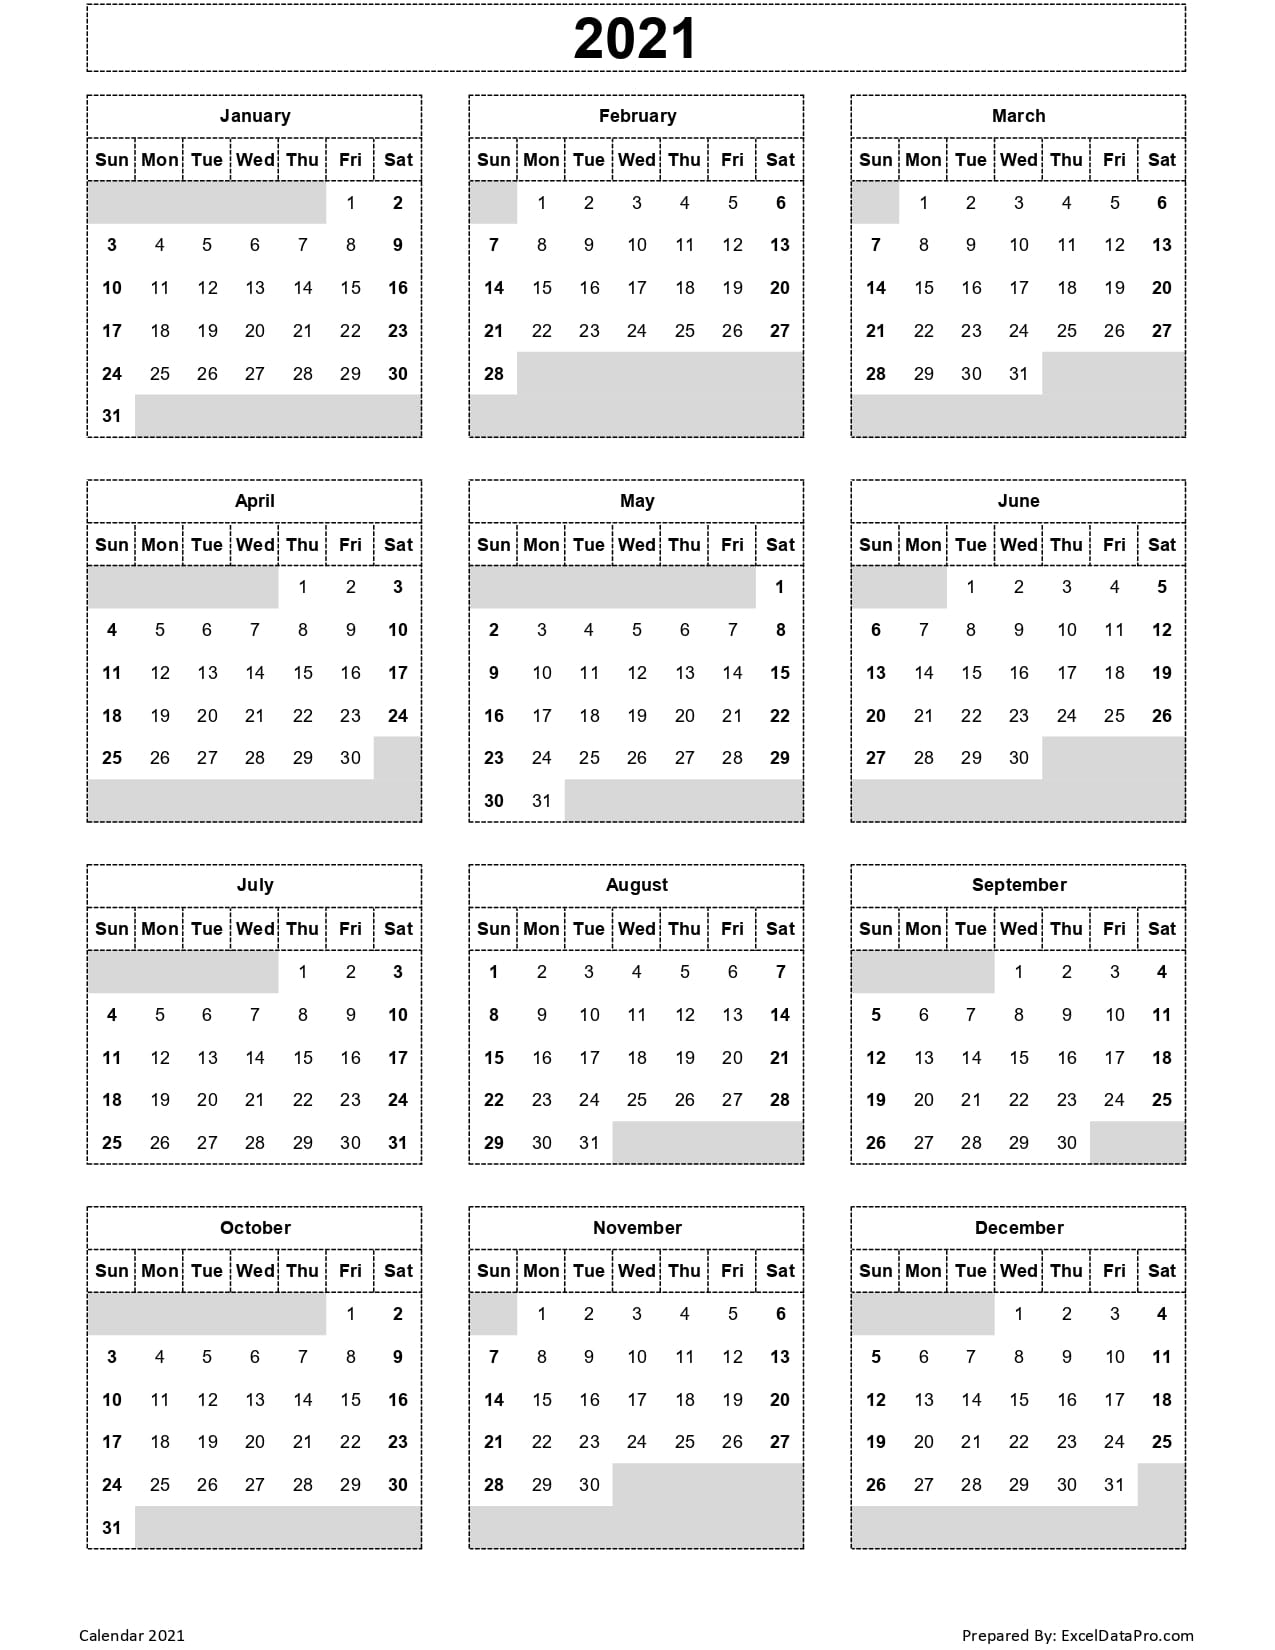 Browse our selection that includes wall calendars, desktop calendars and even wall stickers. Calendar 2021 Excel Templates, Printable PDFs & Images ...